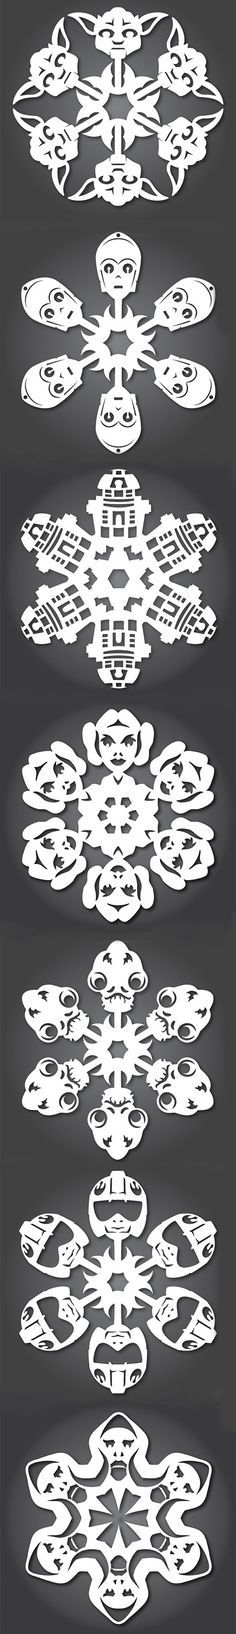 Add some nerdy flair to your winter decorations with these Star Wars themed snowflakes.